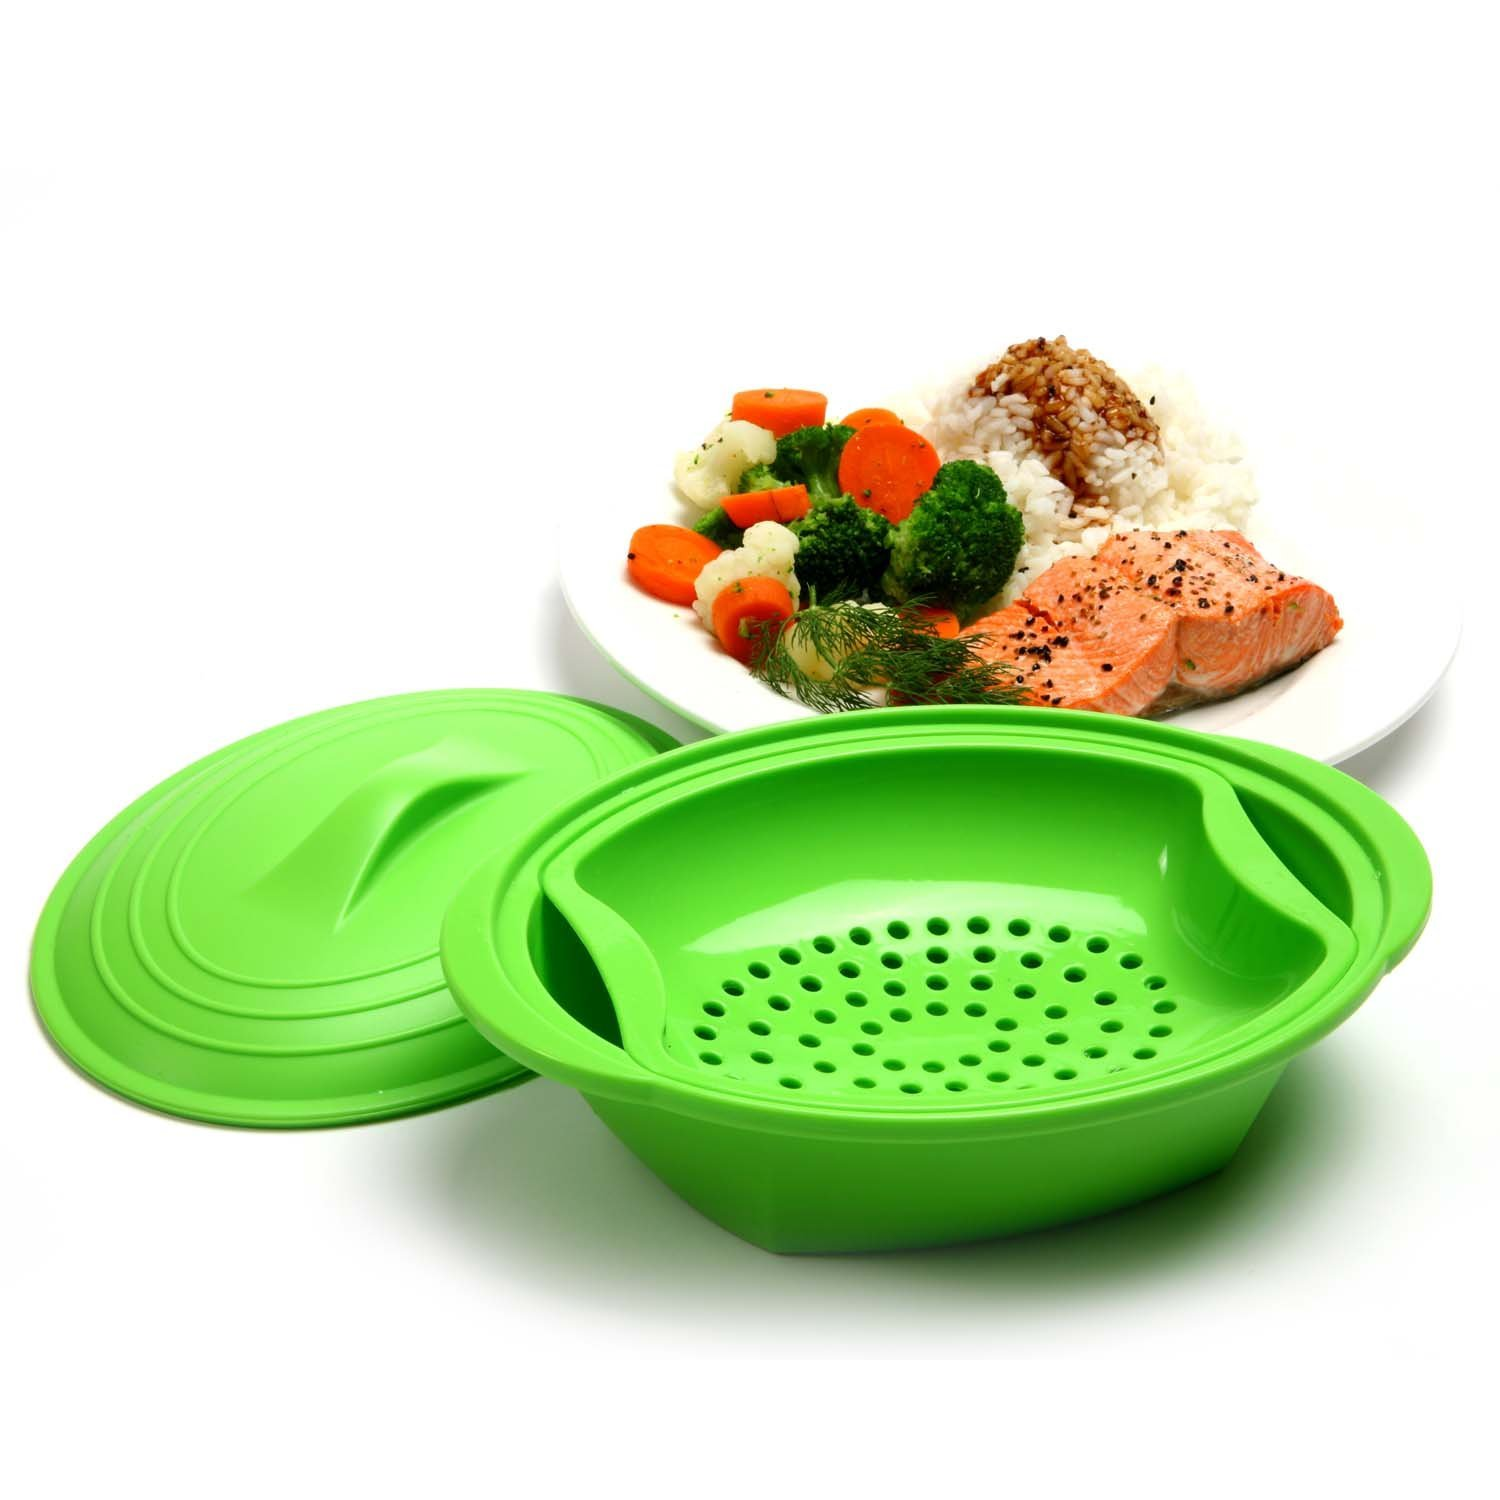 Norpro Microwave Silicone Vegetable Steamer With Insert